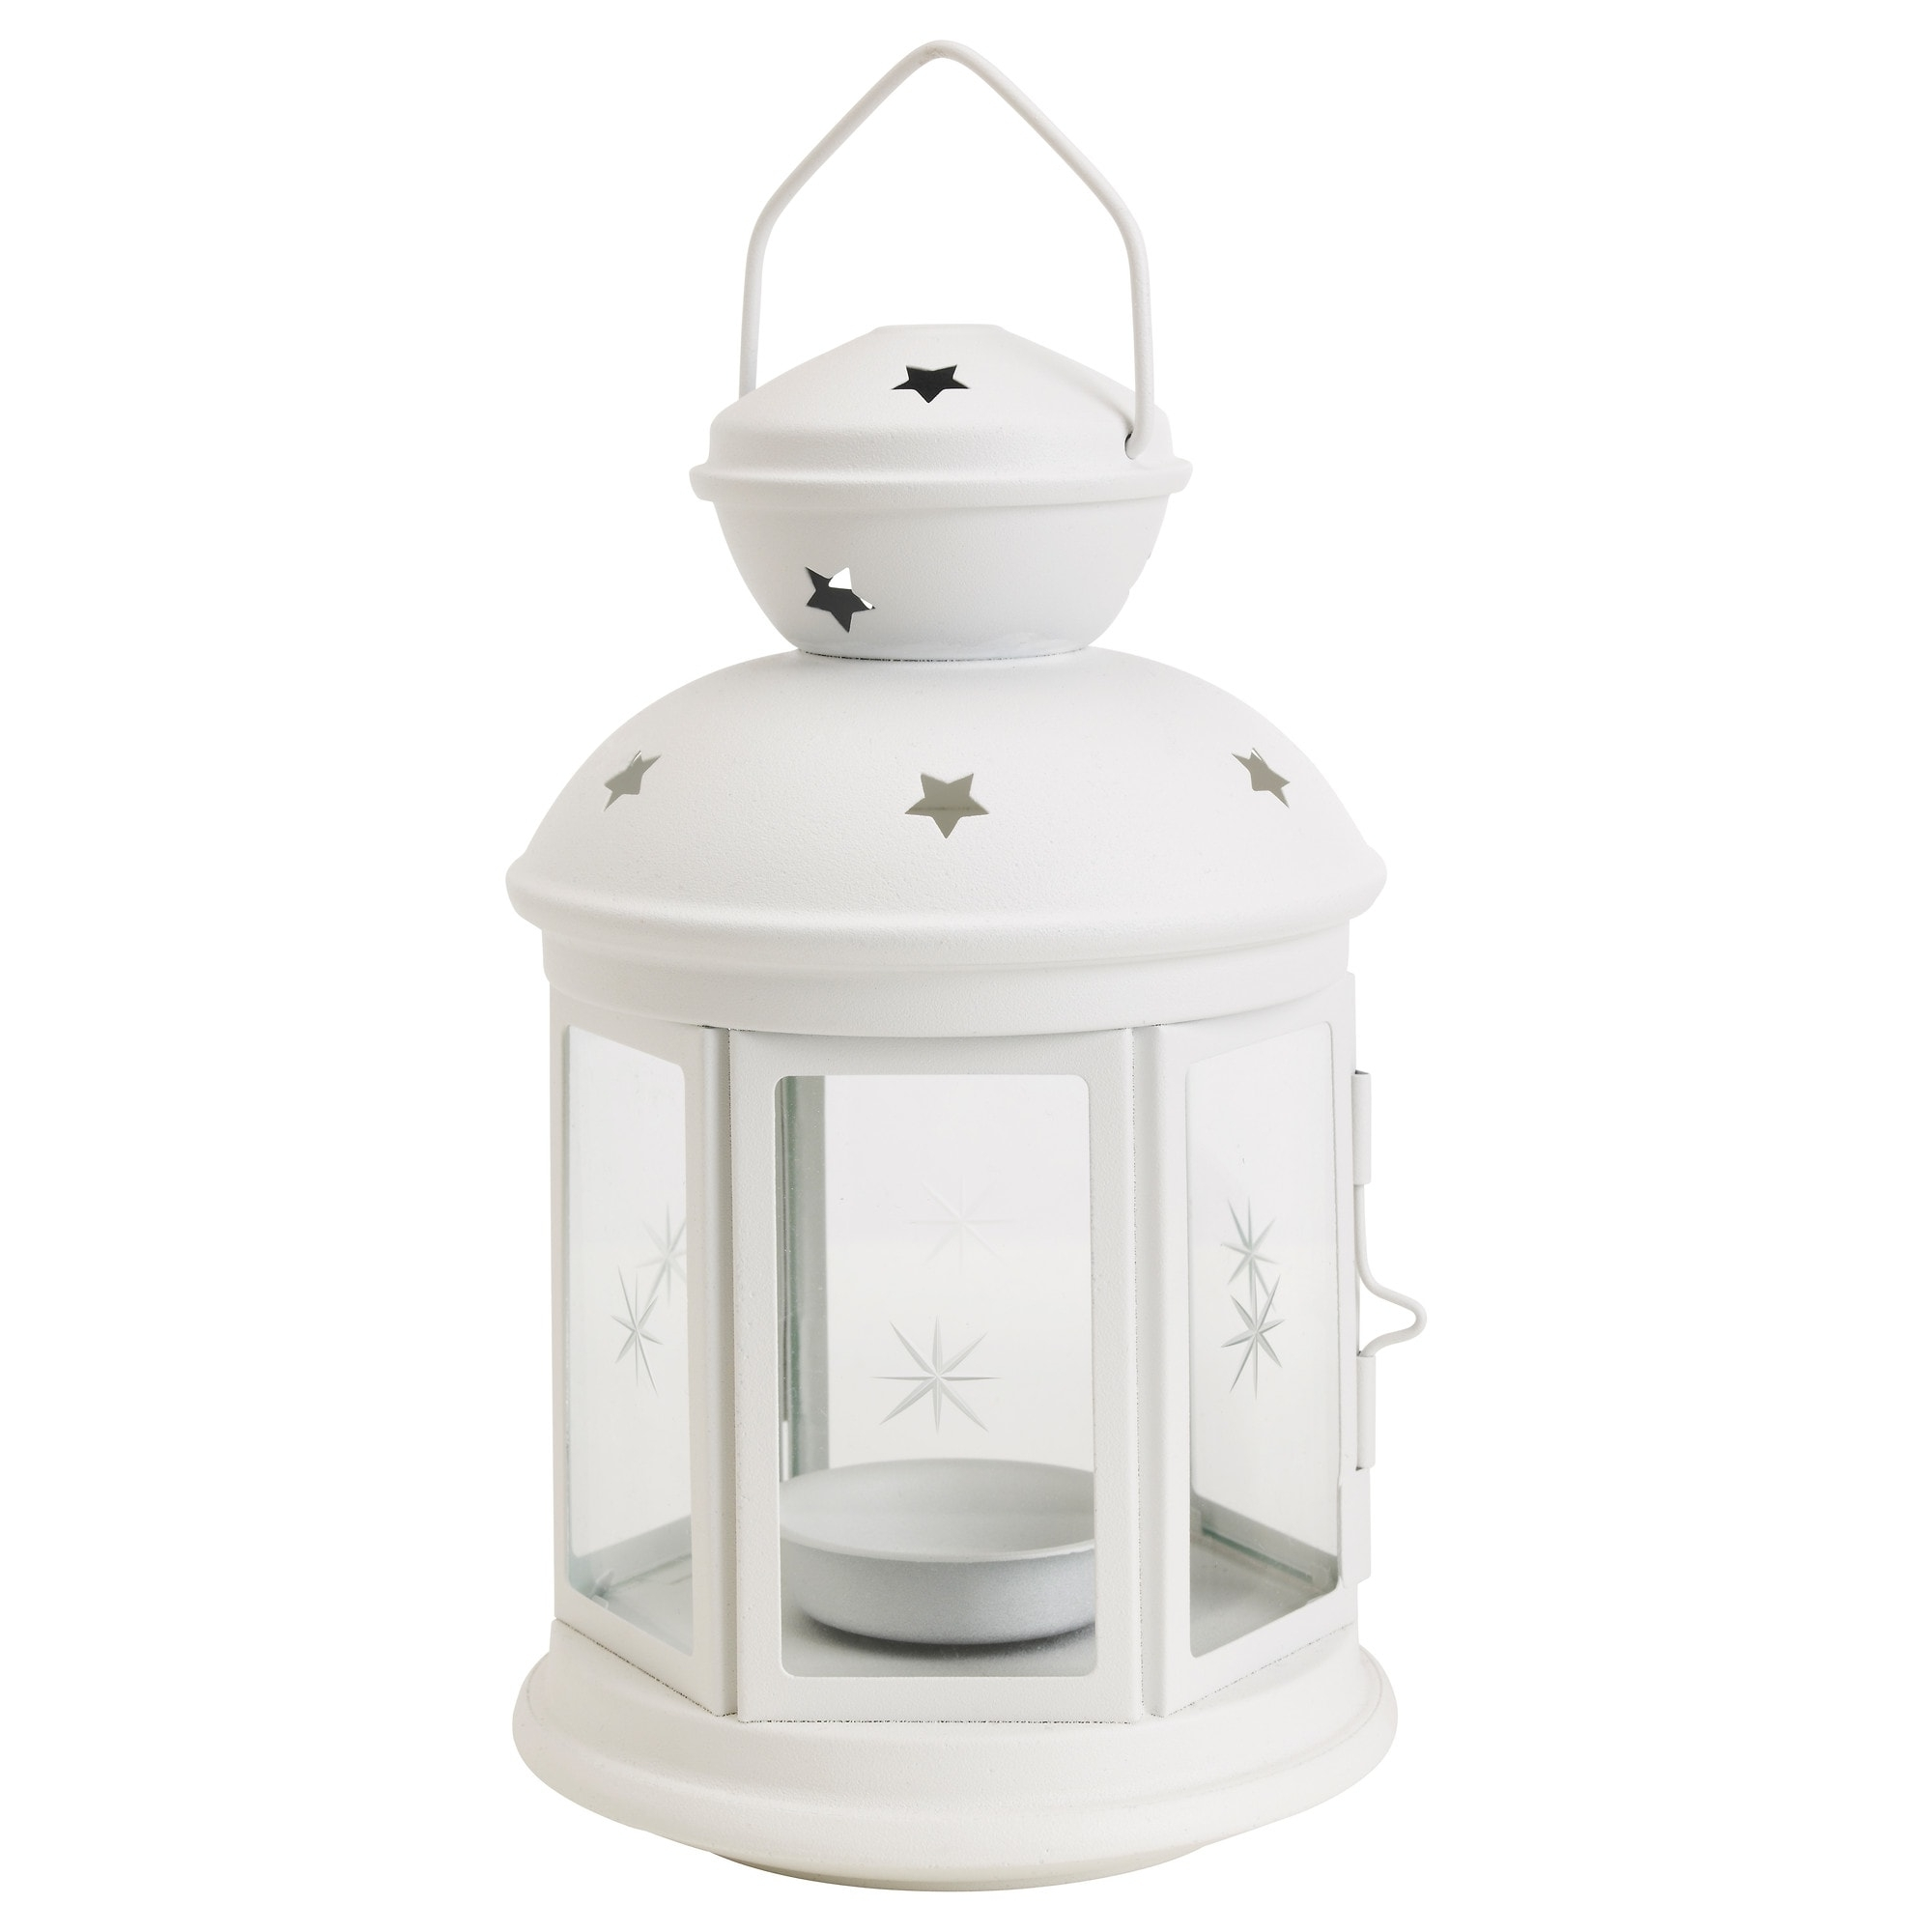 Trendy Outdoor Grey Lanterns Pertaining To Rotera Lantern For Tealight In/outdoor White 21 Cm – Ikea (View 19 of 20)